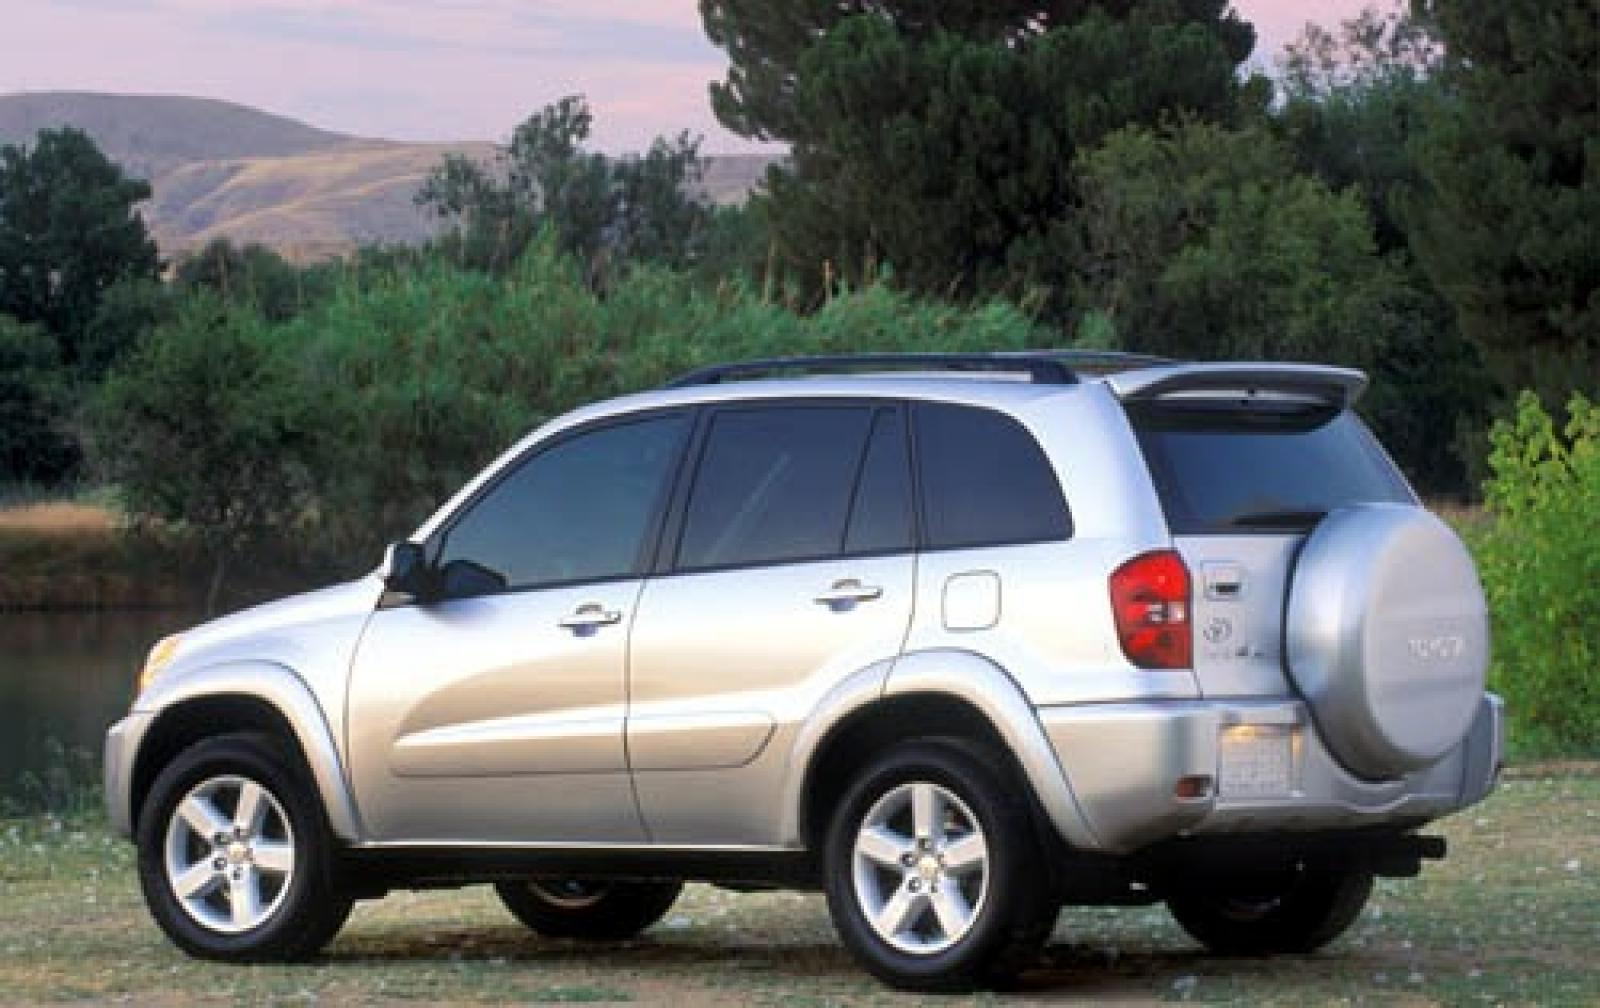 2005 toyota rav4 information and photos zombiedrive. Black Bedroom Furniture Sets. Home Design Ideas